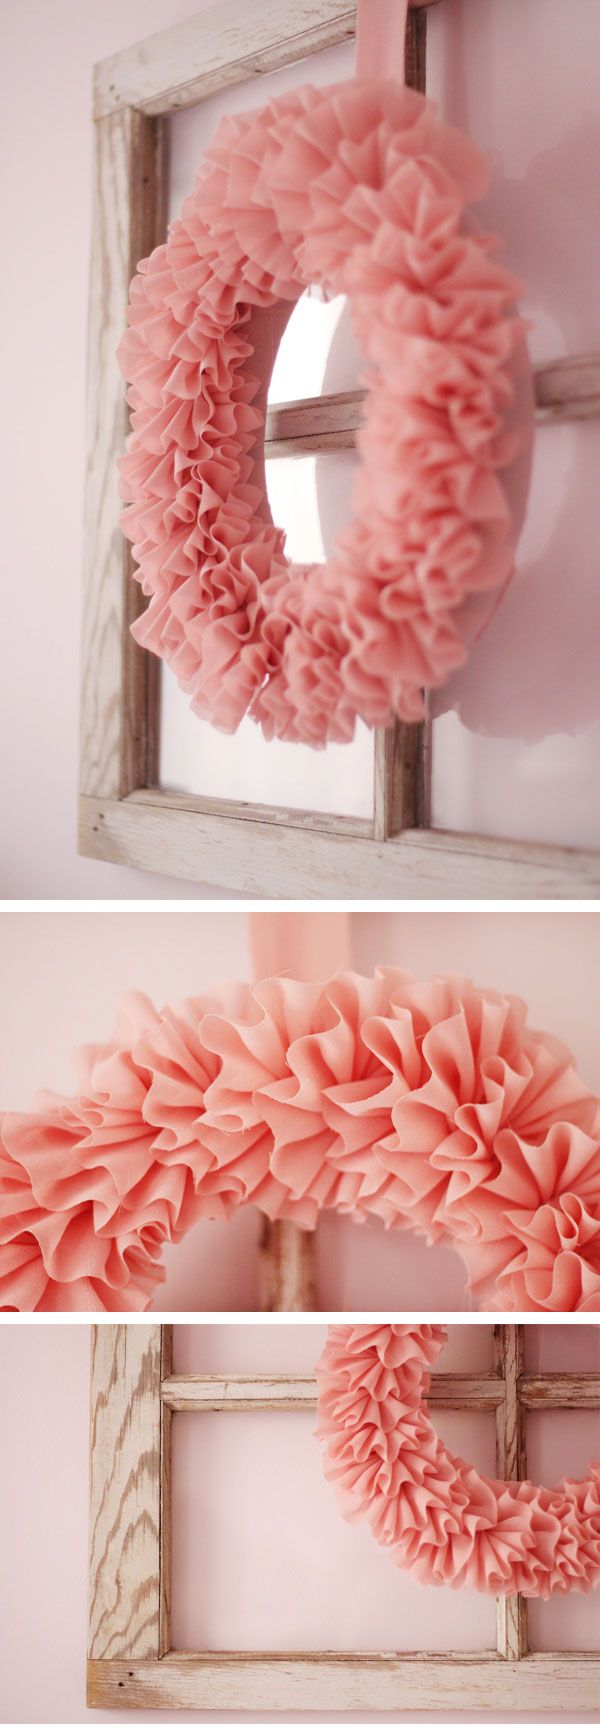 Ruffled wreath.  Soft and pretty.